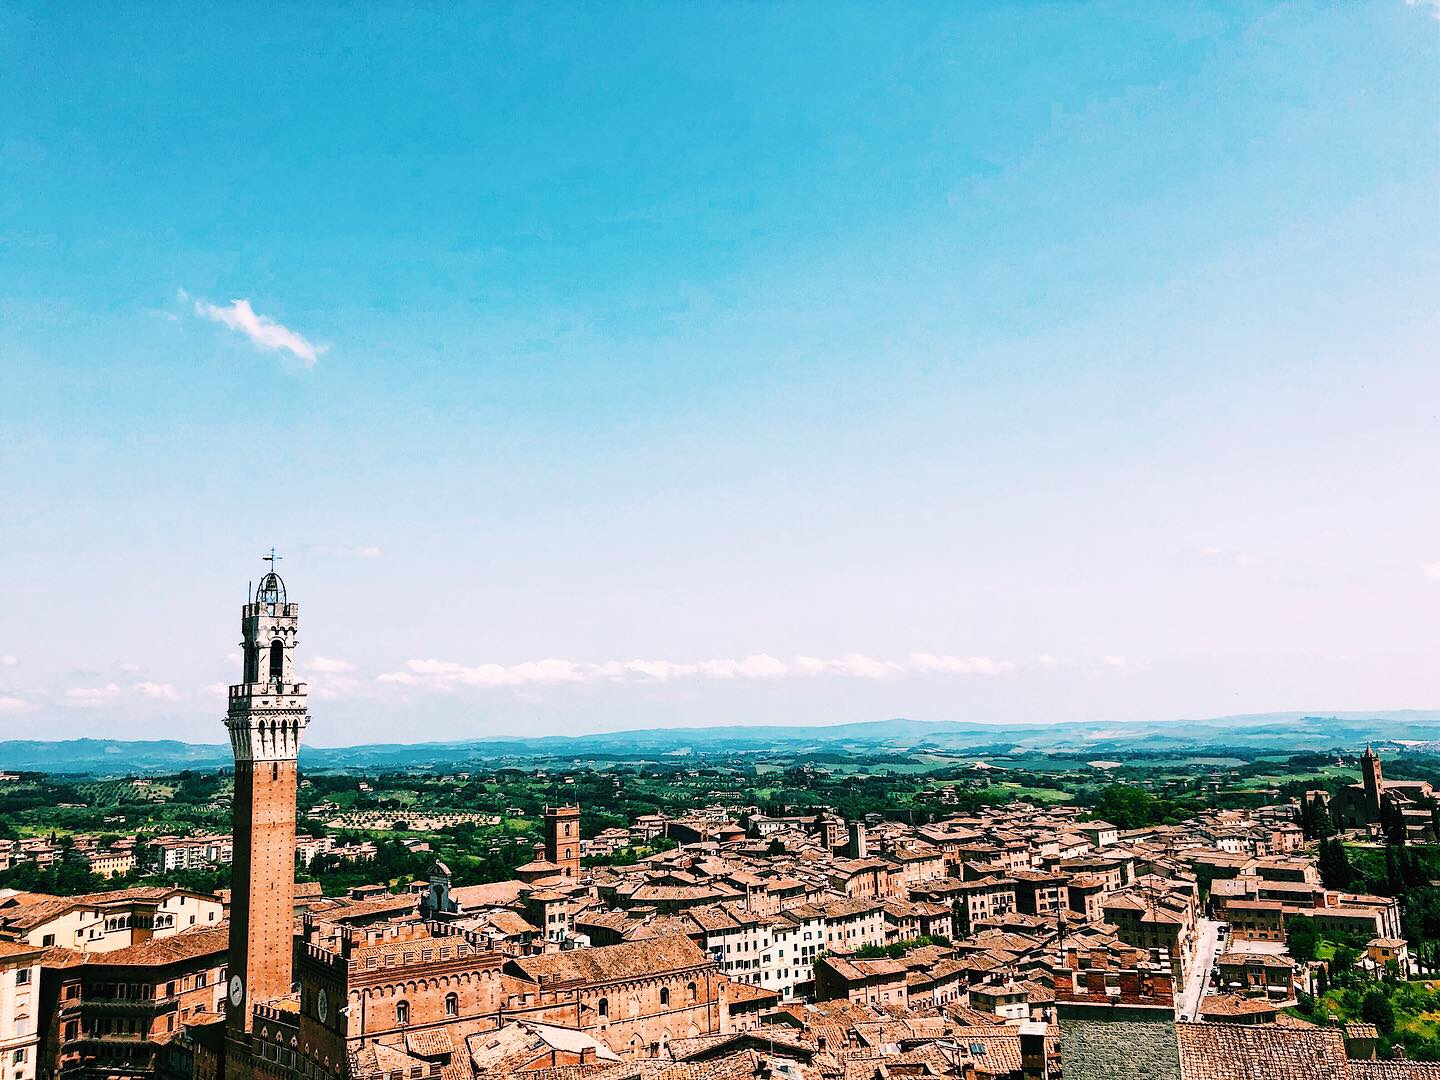 View of Siena from Facciatone